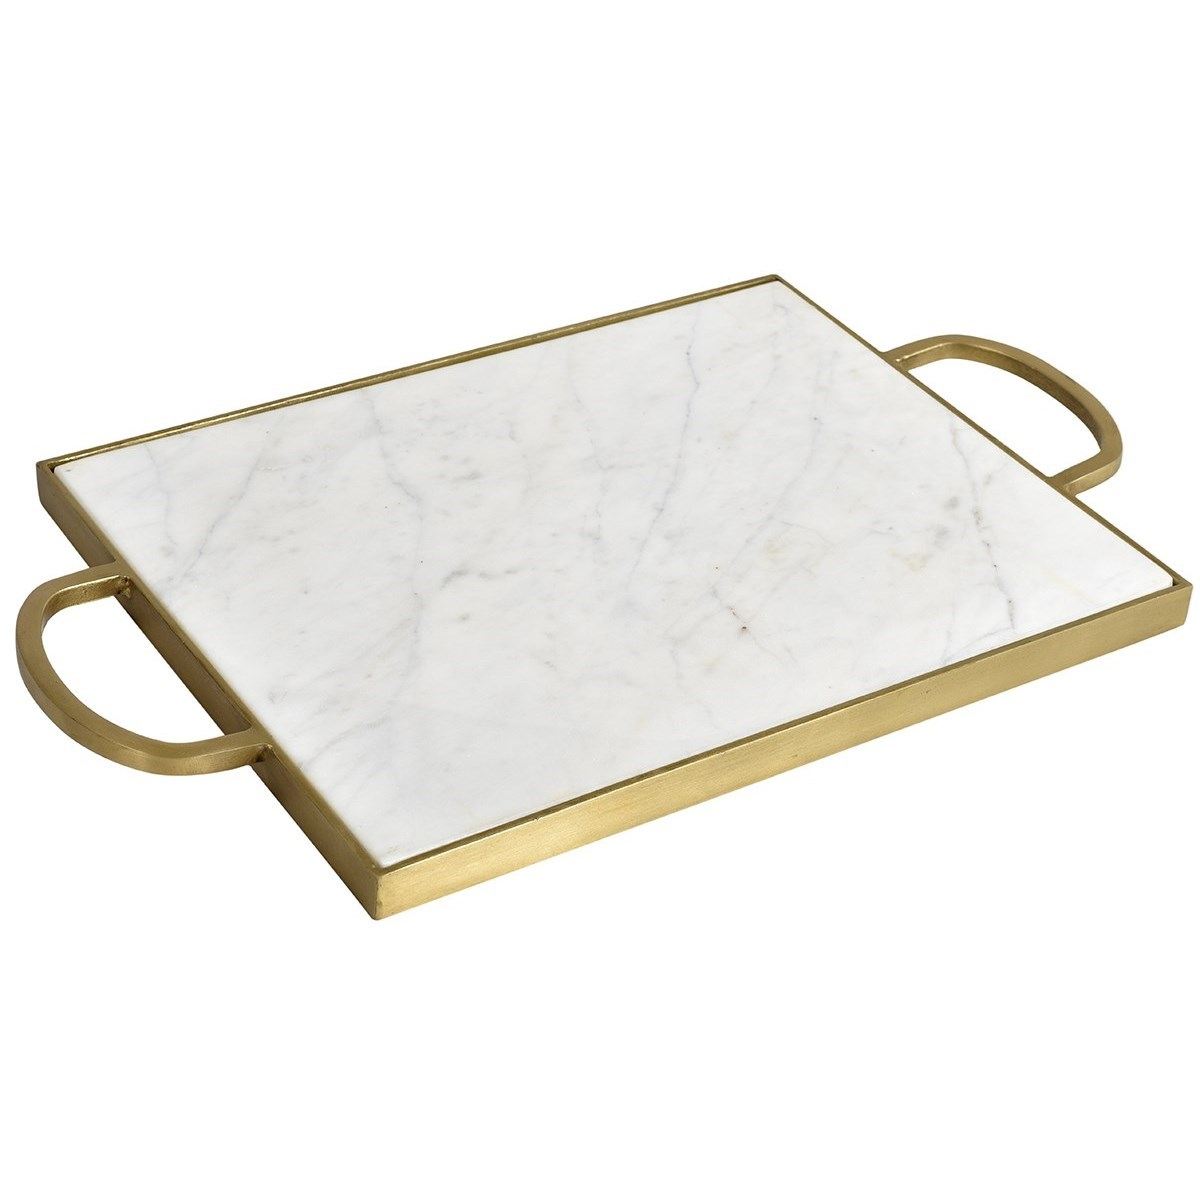 Accessories Marble Tray at Williams & Kay